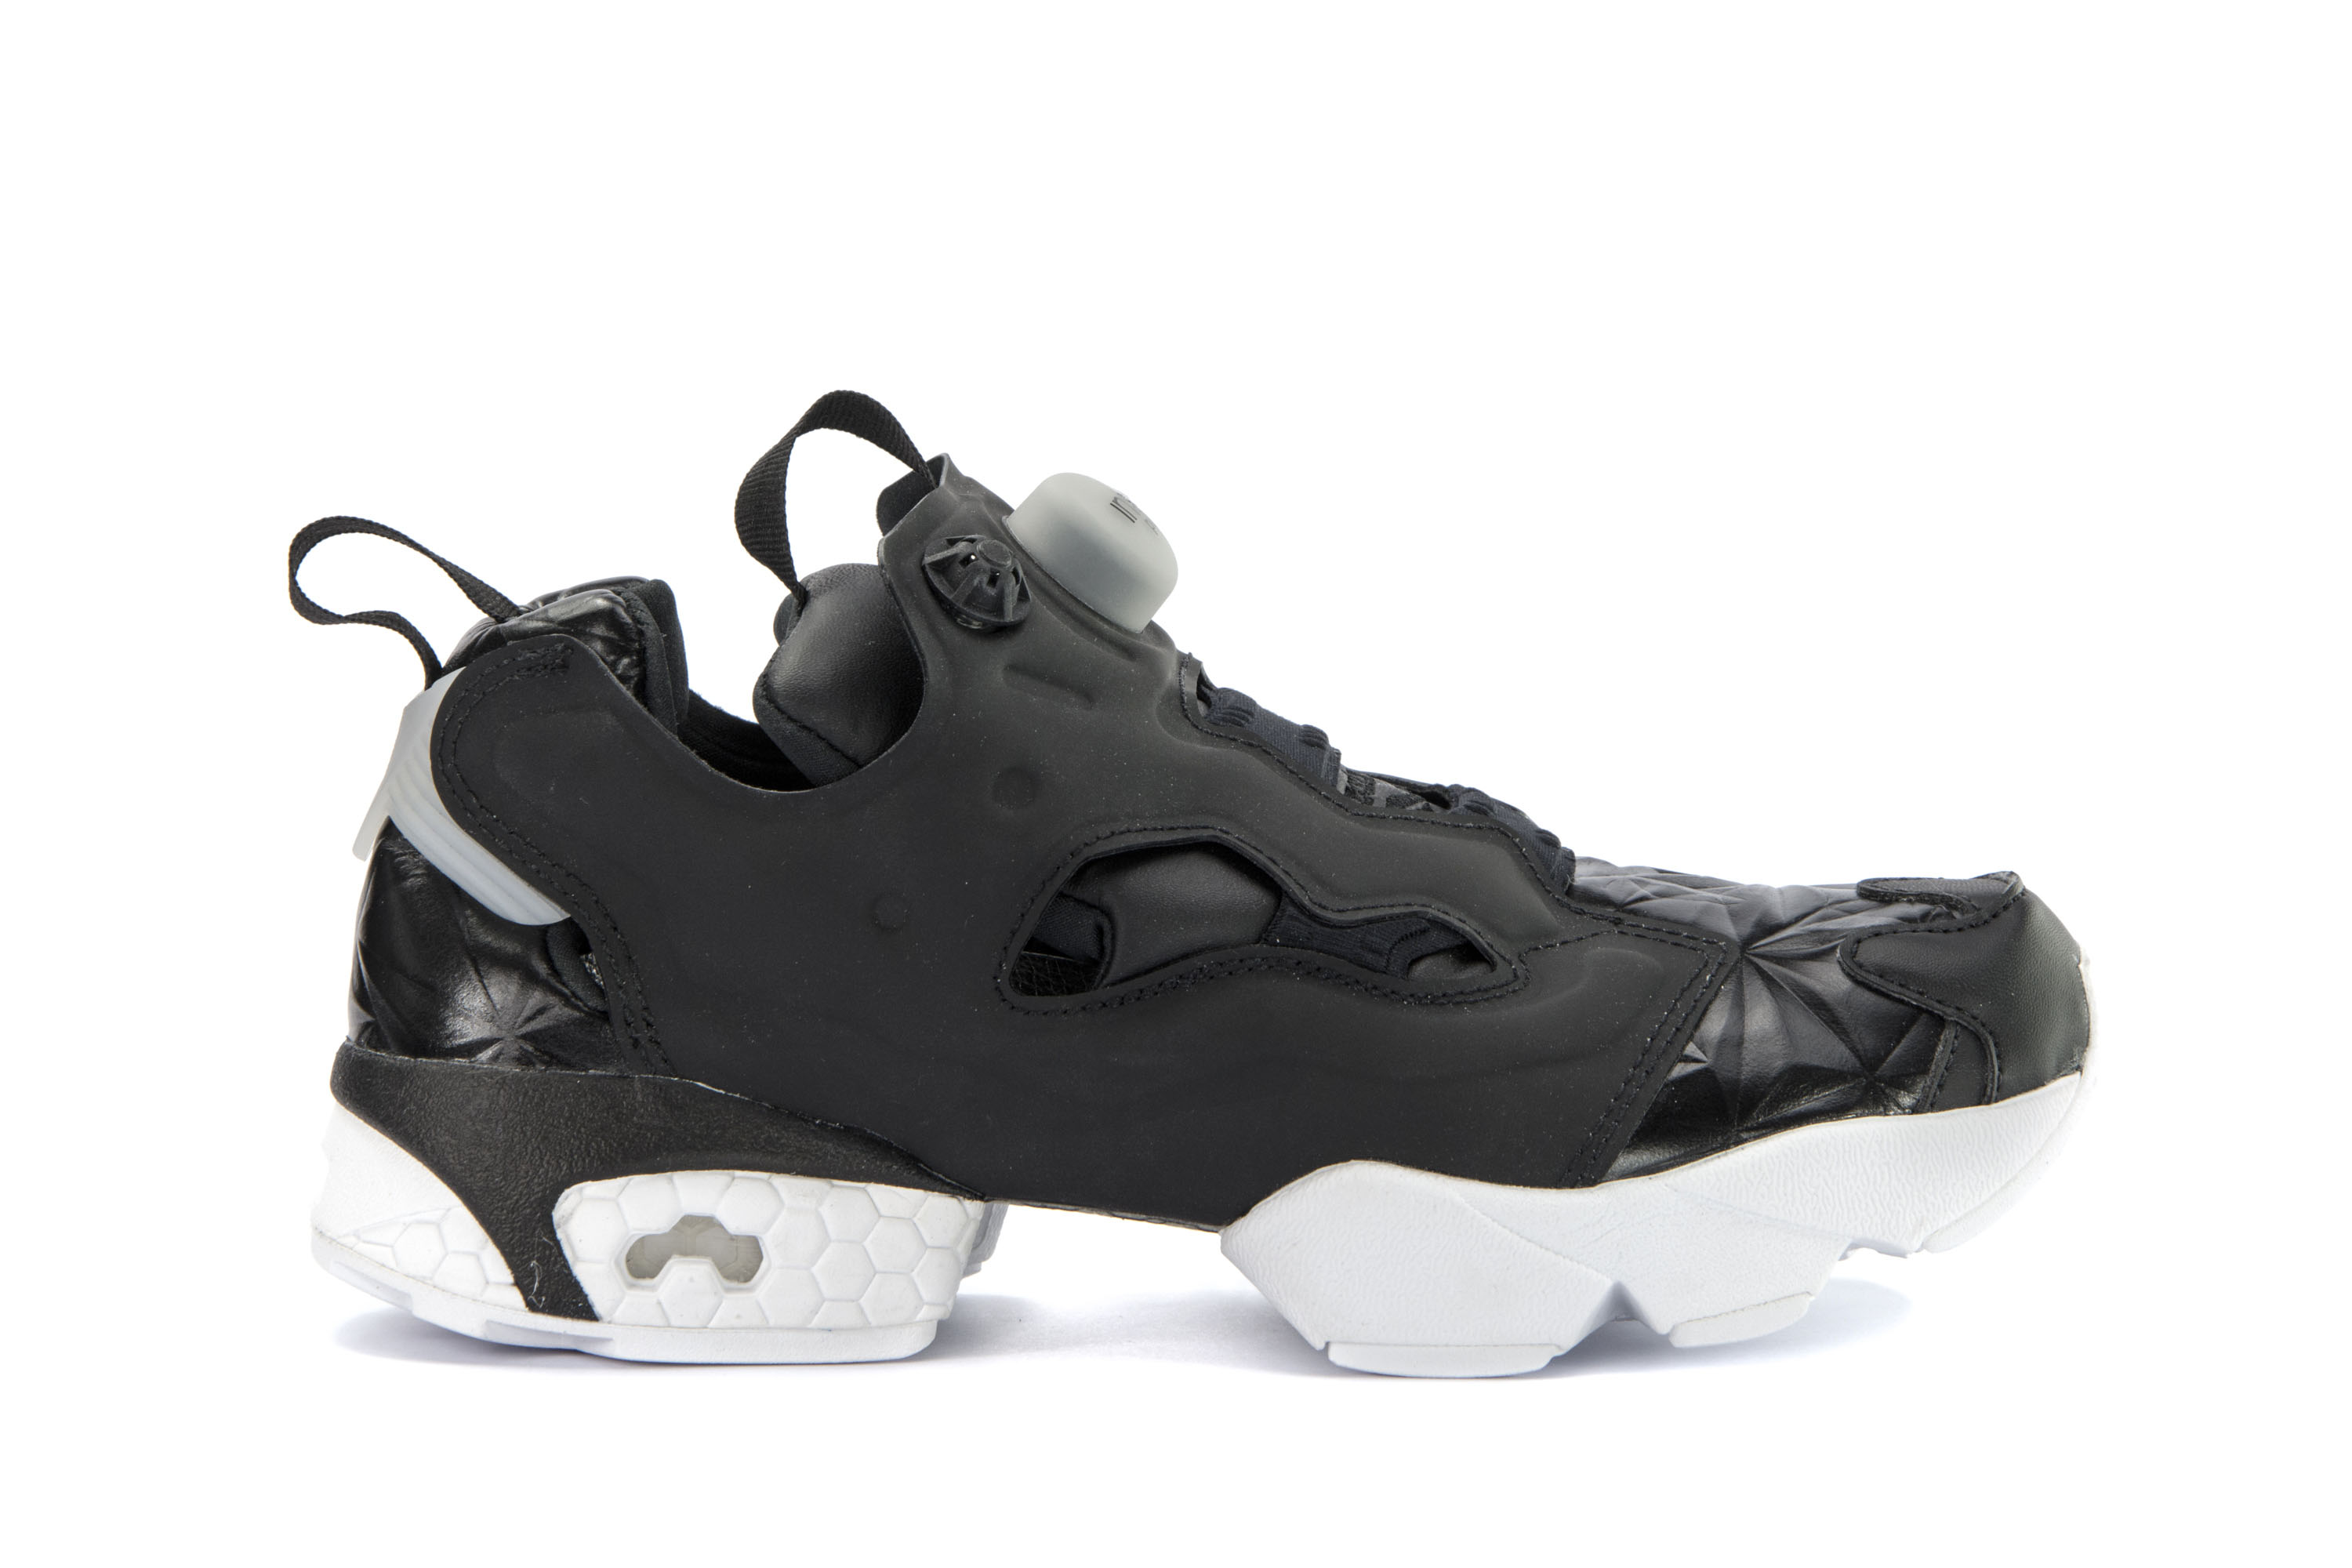 0b9492f0767 REEBOK Womens Shoes Low Sneakers INSTAPUMP FURY HYPE MET Black ...